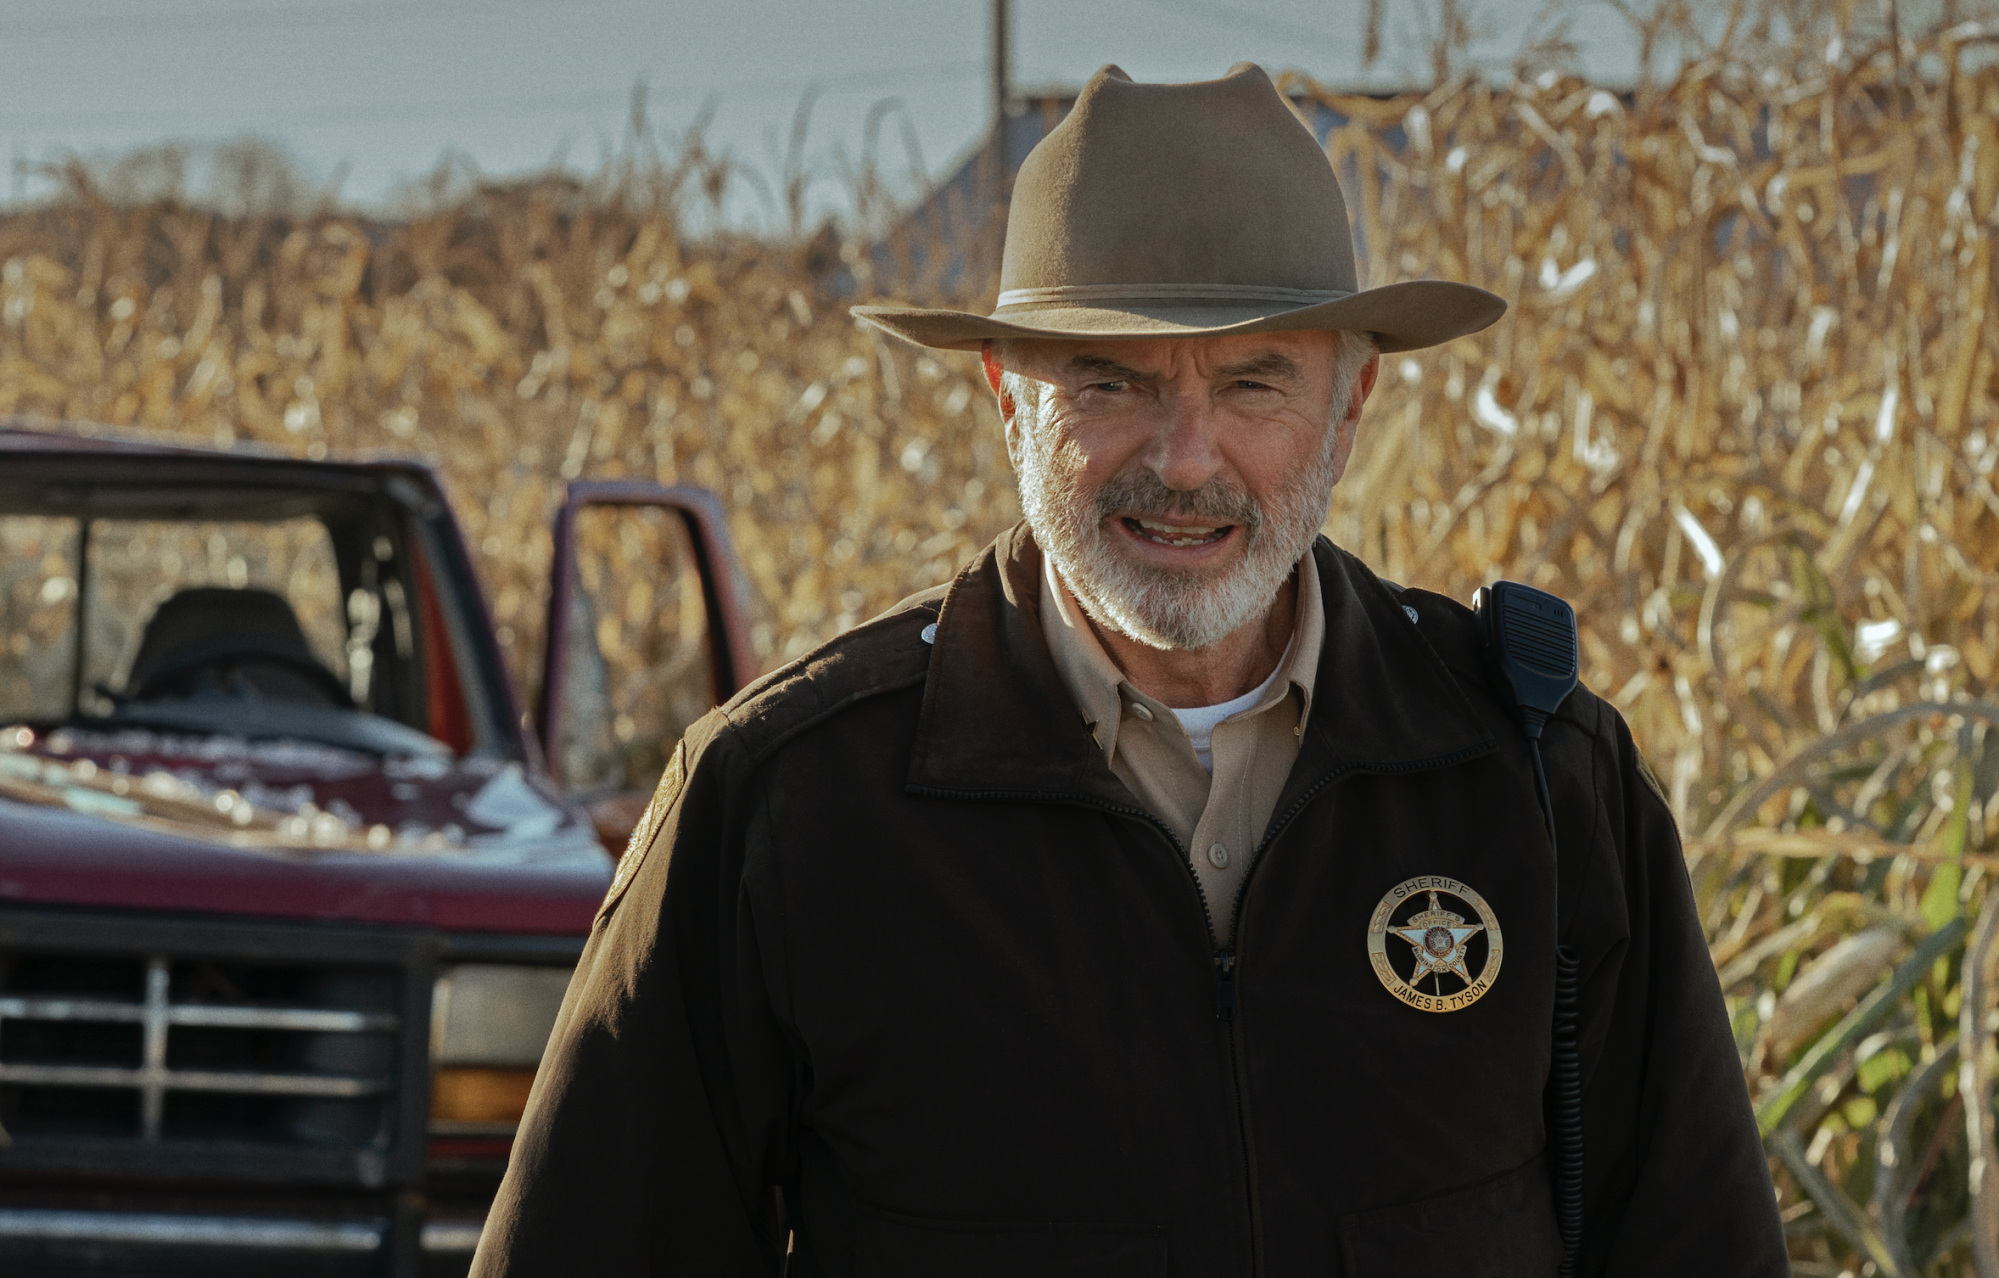 'Invasion' First Trailer: Sam Neill and More Brace for an Alien Takeover in Apple TV+ Series